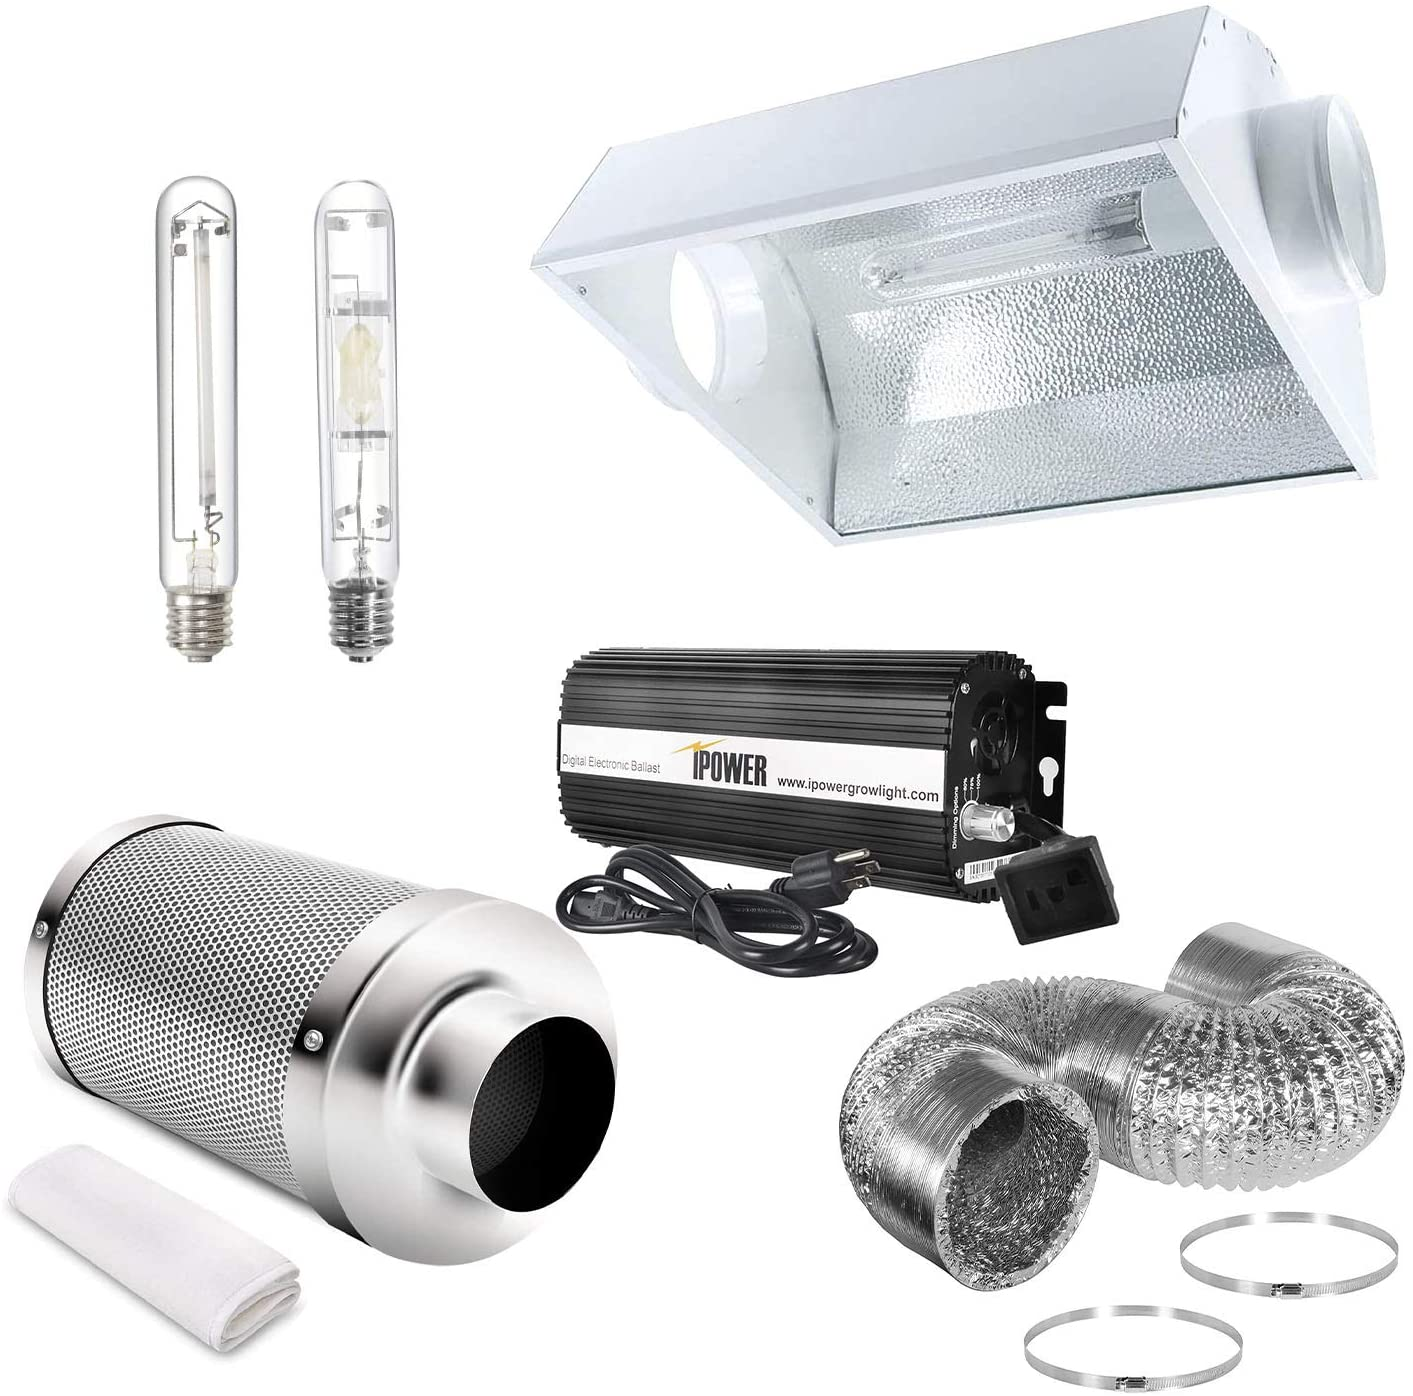 iPower 6 Inch Cooled Reflector Hood Air Carbon Filter 8 Feet Ducting Combo with 400 Watt Bulbs and Digital Dimmable Electronic Ballast, for HPS & MH Grow Light System, Kits